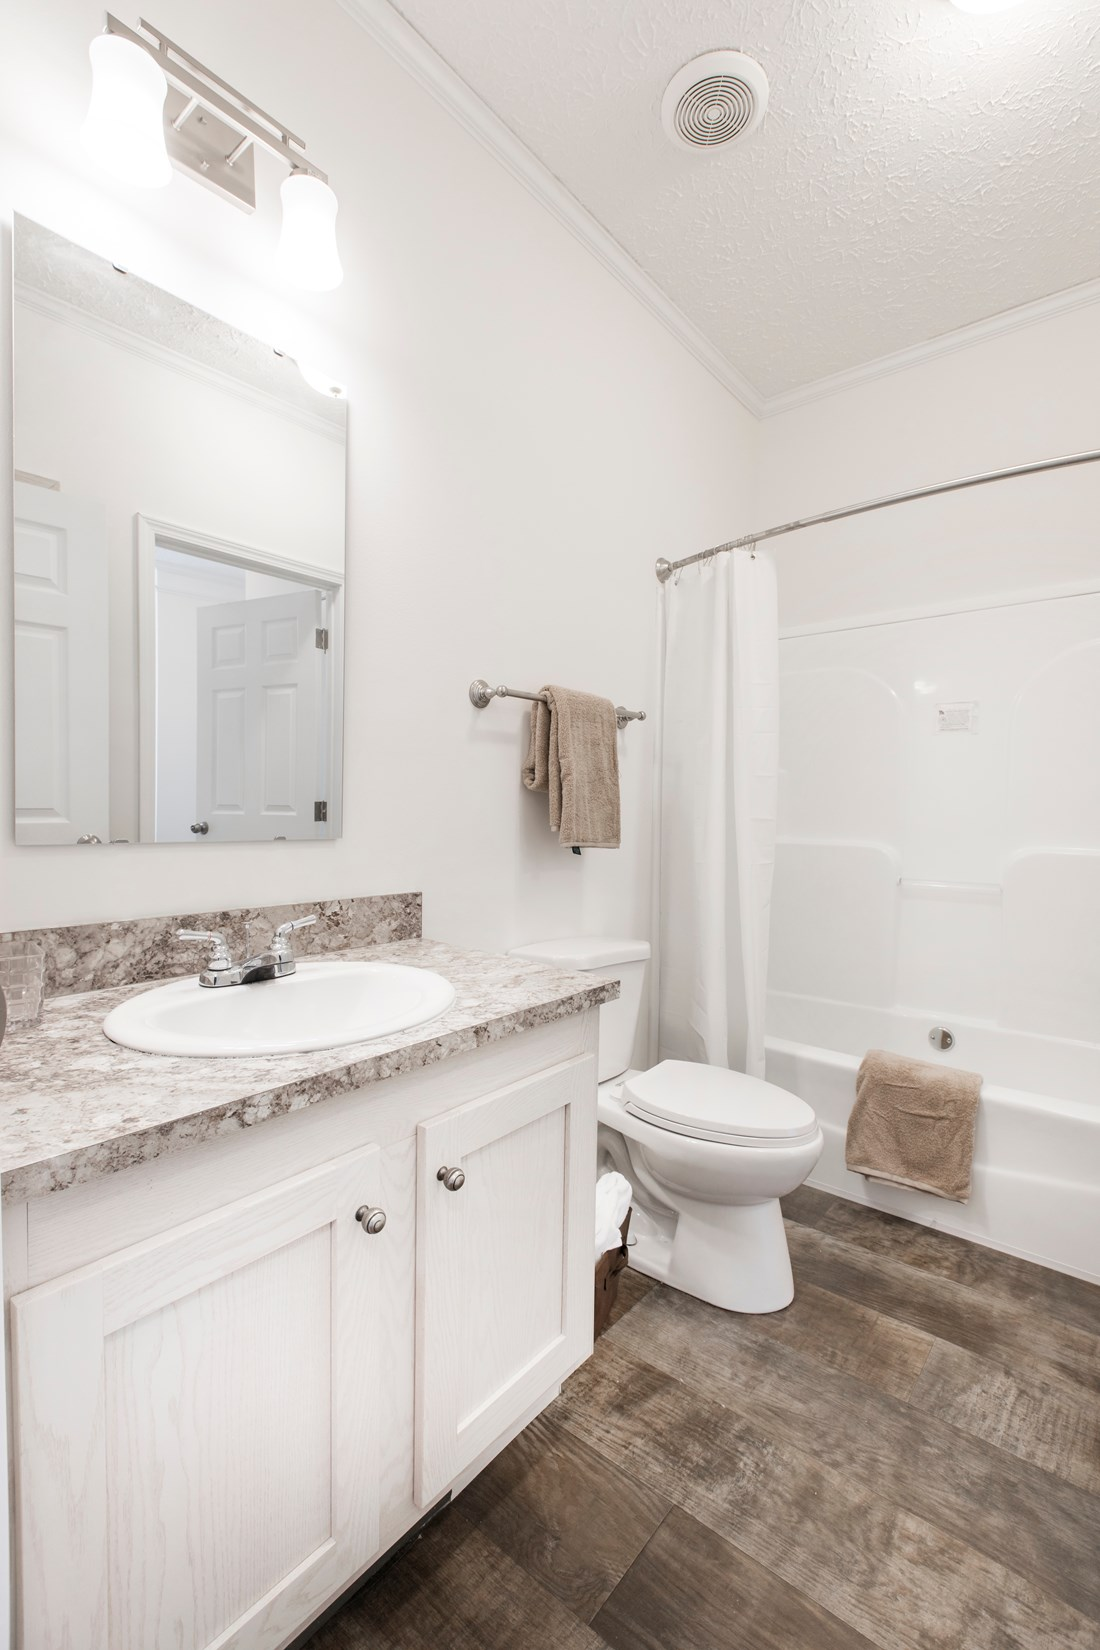 The 3558 JAMESTOWN Guest Bathroom. This Manufactured Mobile Home features 3 bedrooms and 2 baths.